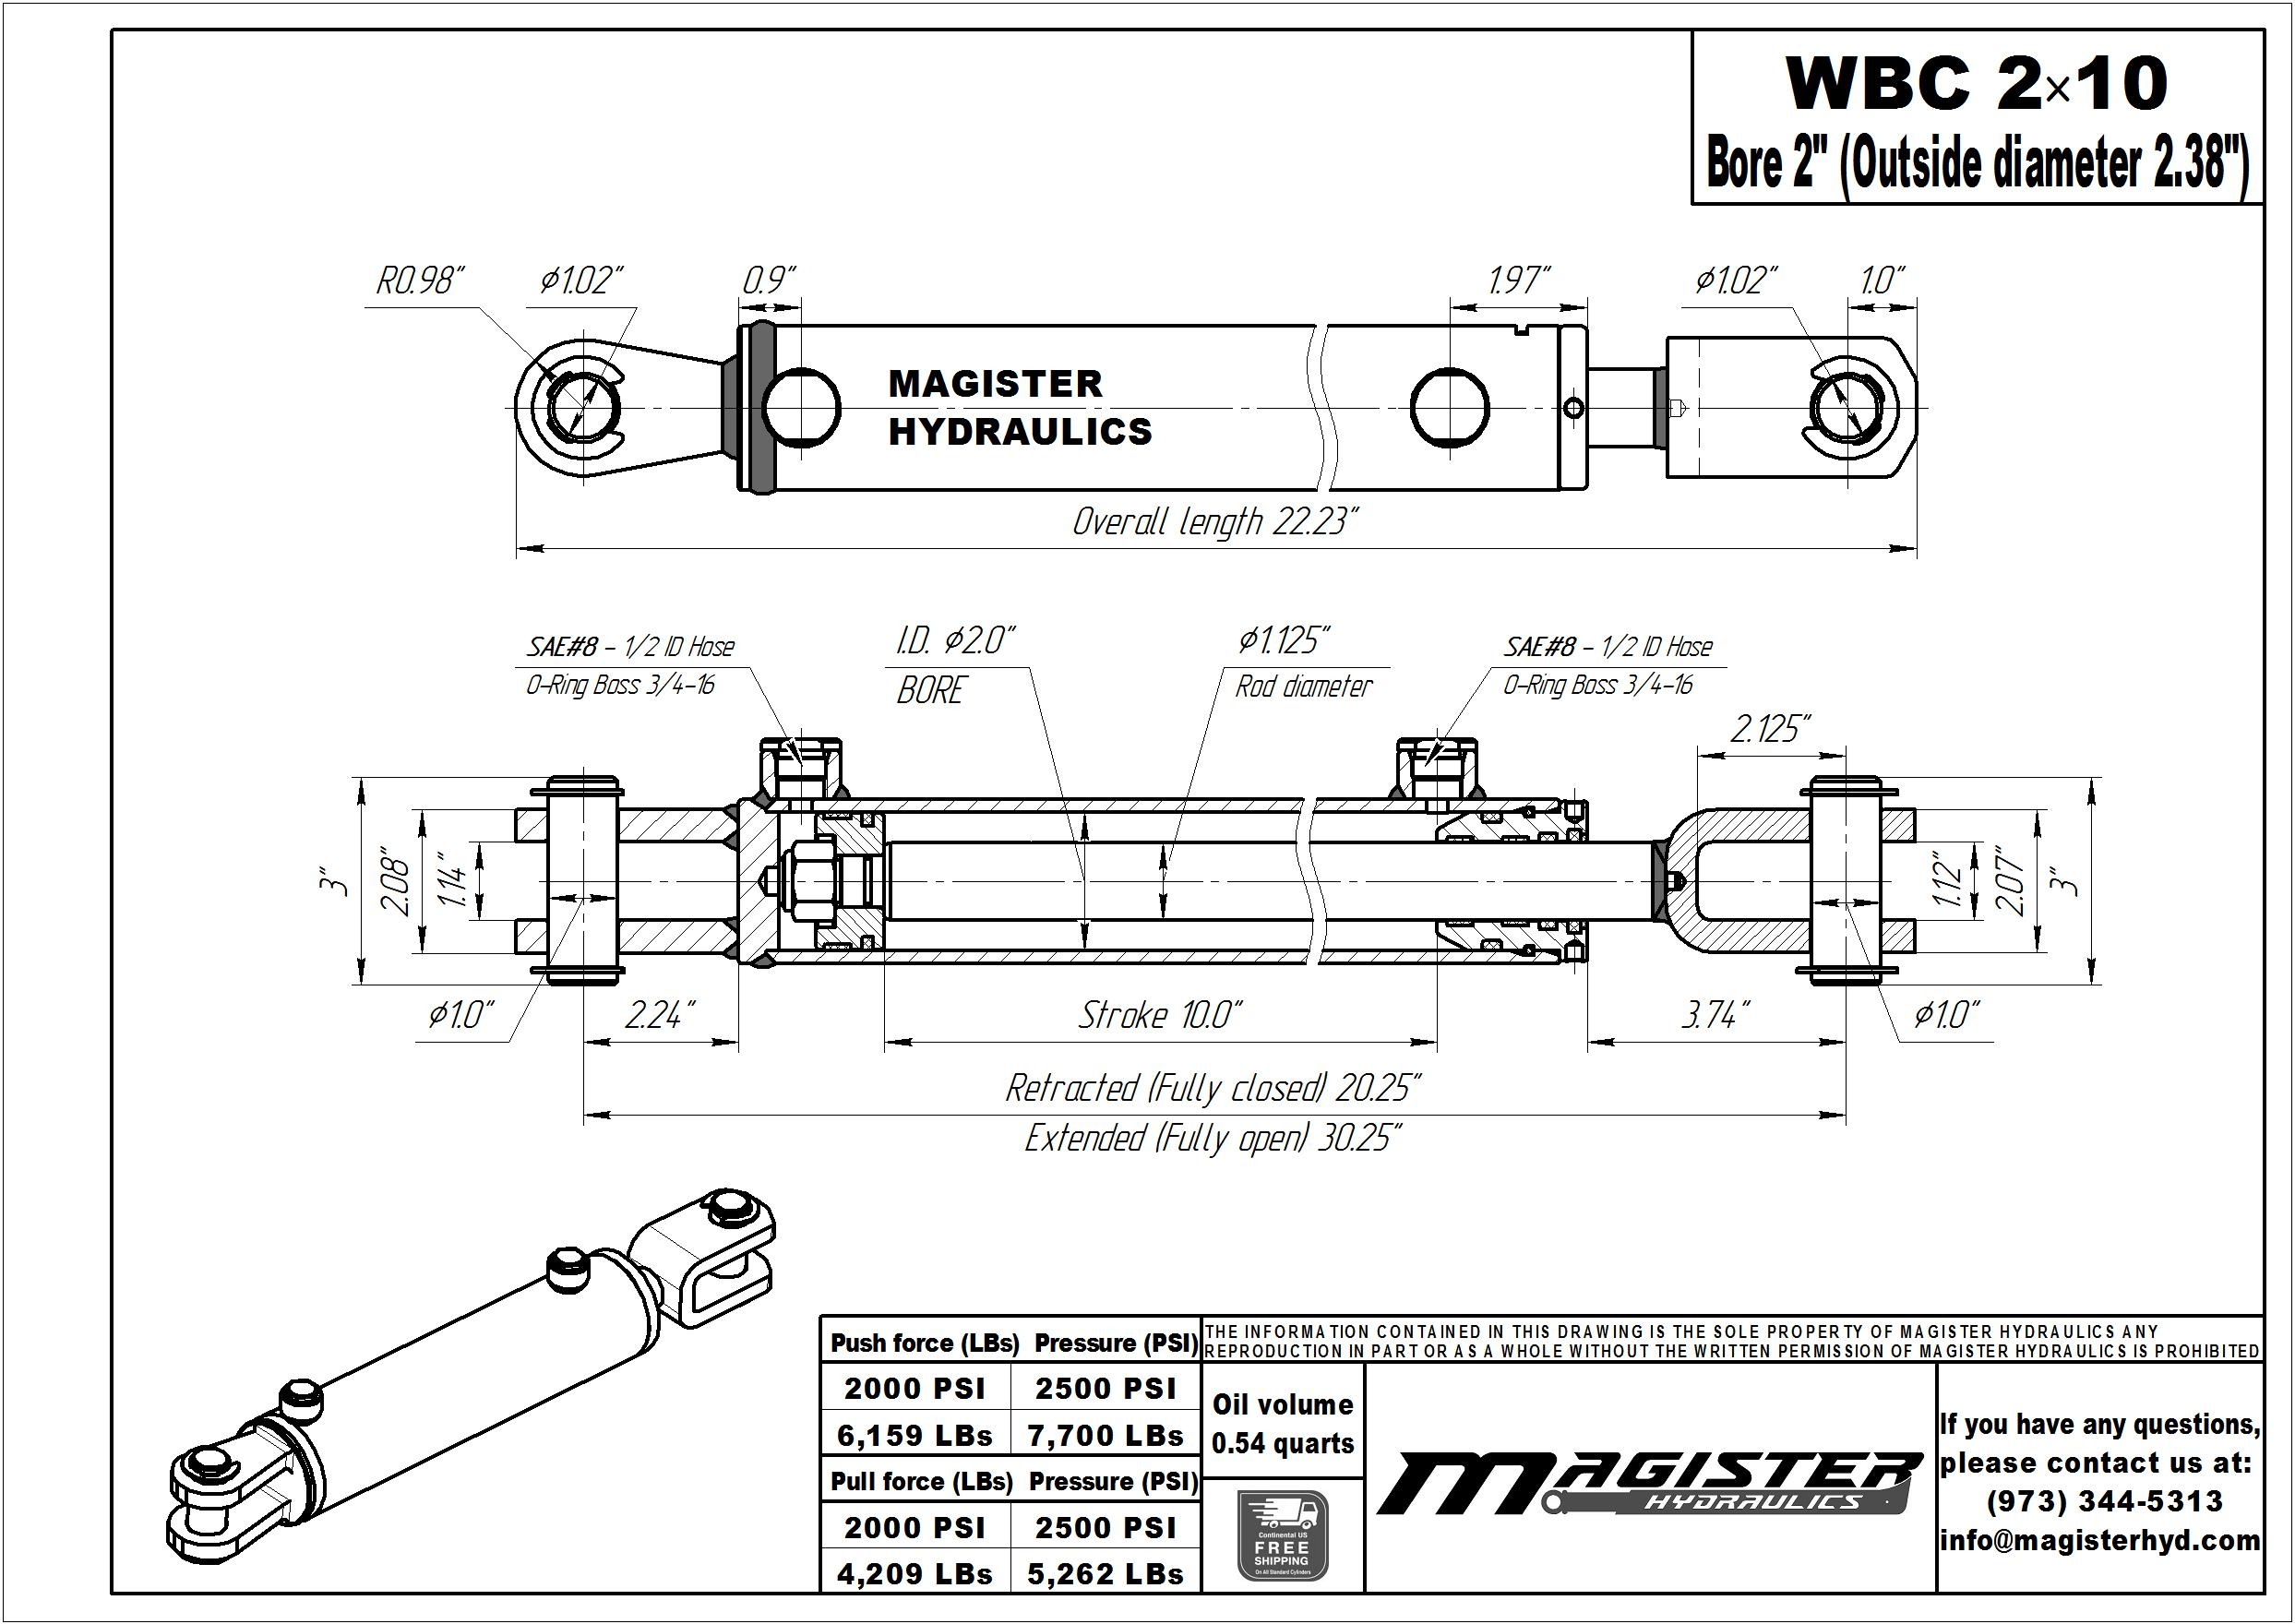 2 bore x 10 stroke hydraulic cylinder, ag clevis double acting cylinder | Magister Hydraulics